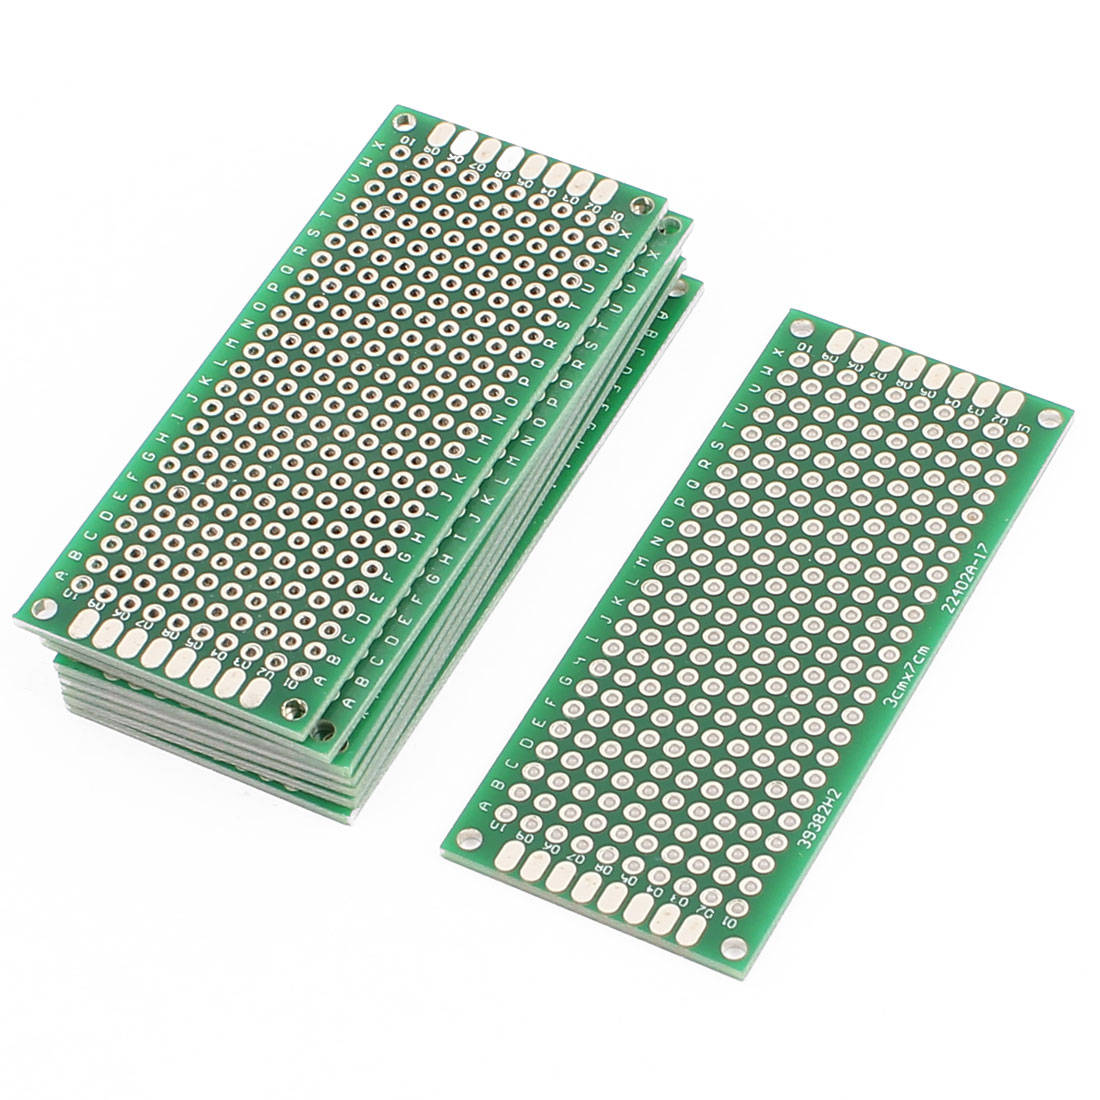 8 Pcs 3 x 7cm Double-Side Prototype Solderable Paper Universal PCB Board